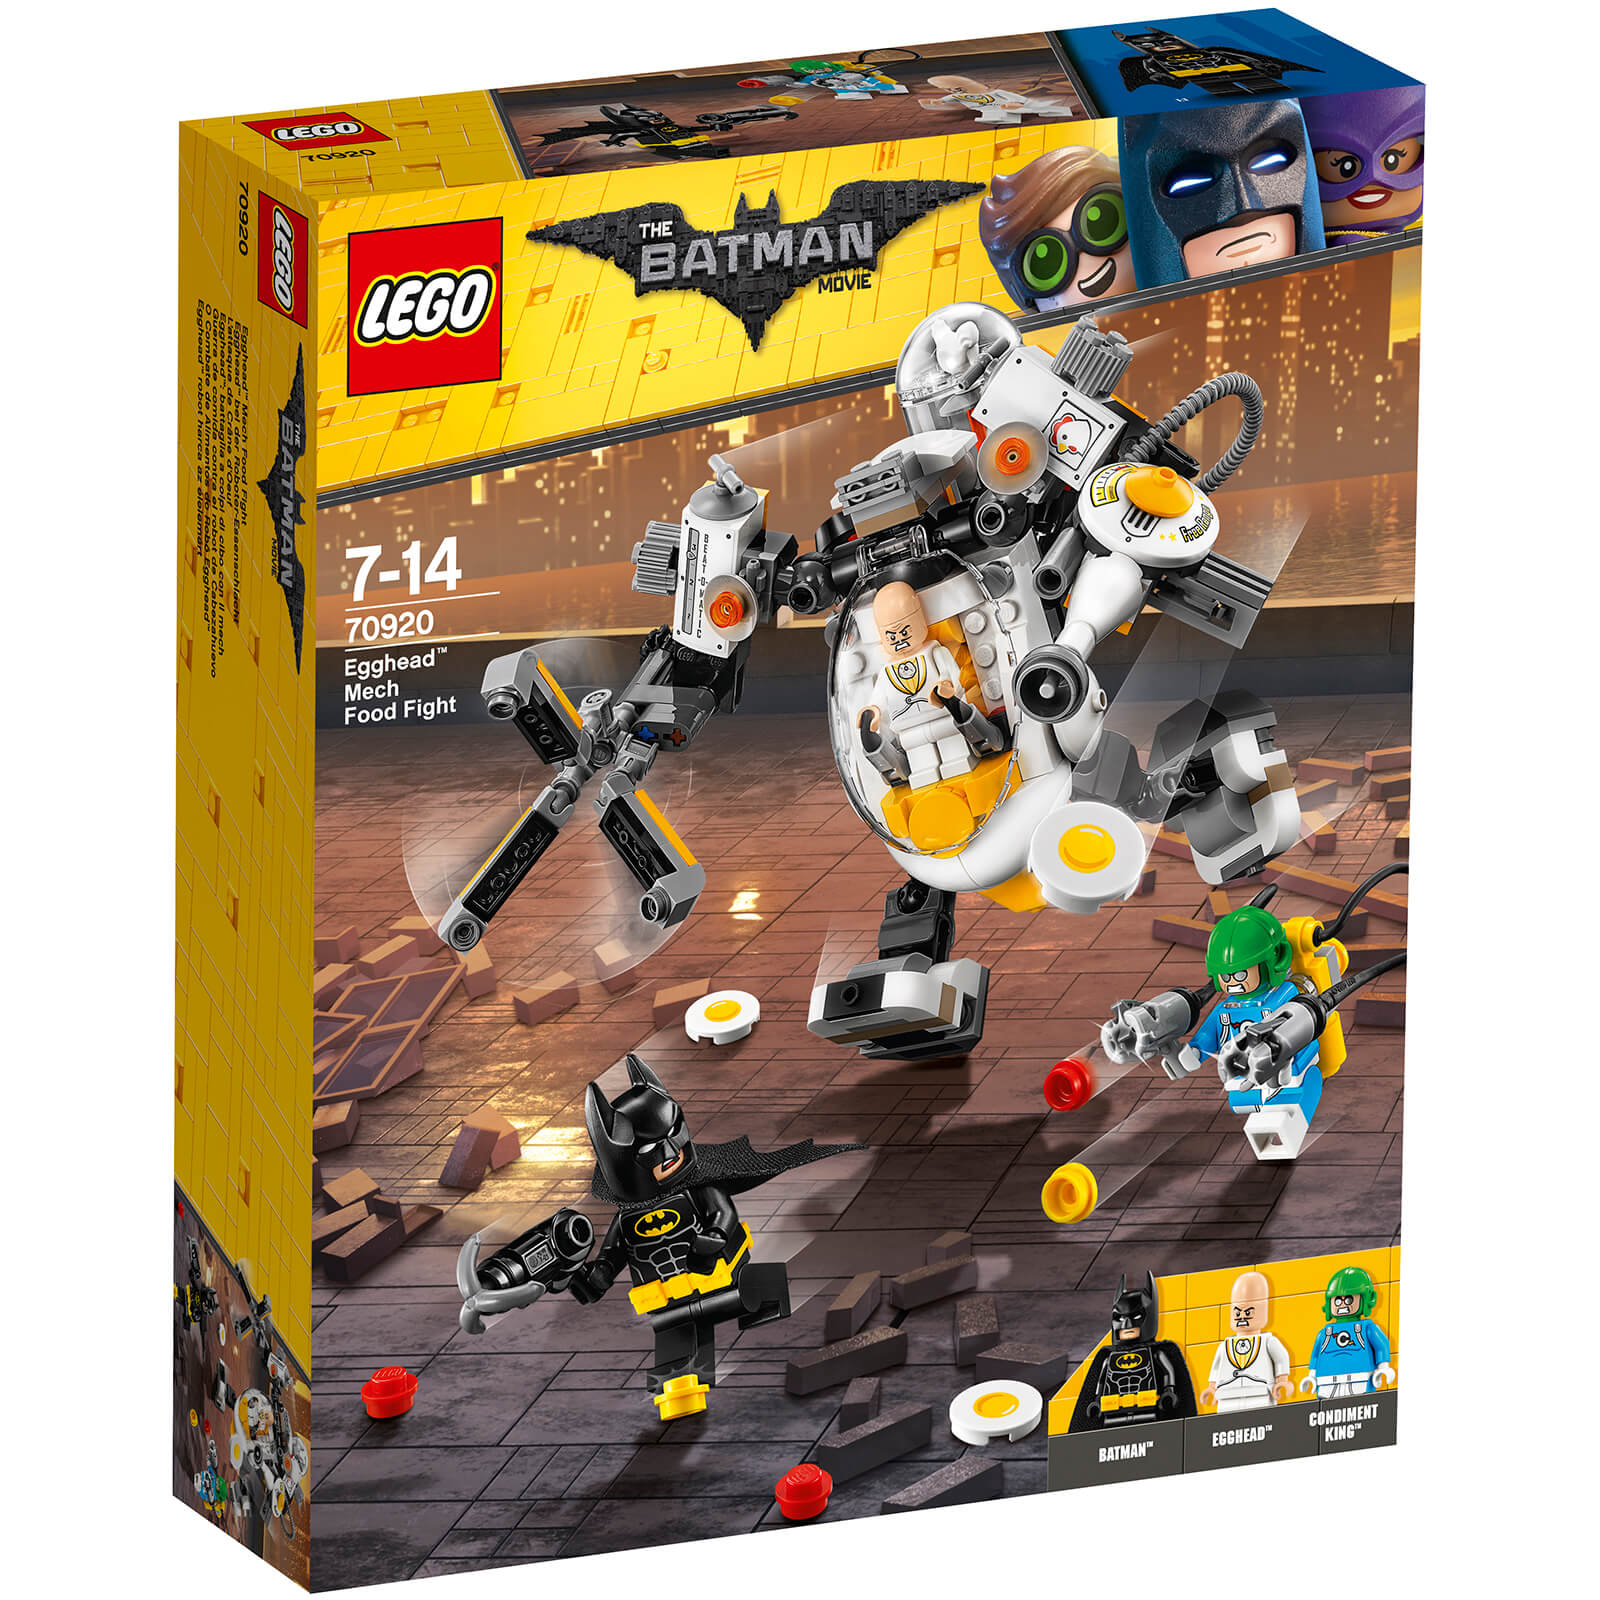 The Lego Batman Movie Egghead Mech Food Fight 70920 Toys Zavvi Us Tee Description